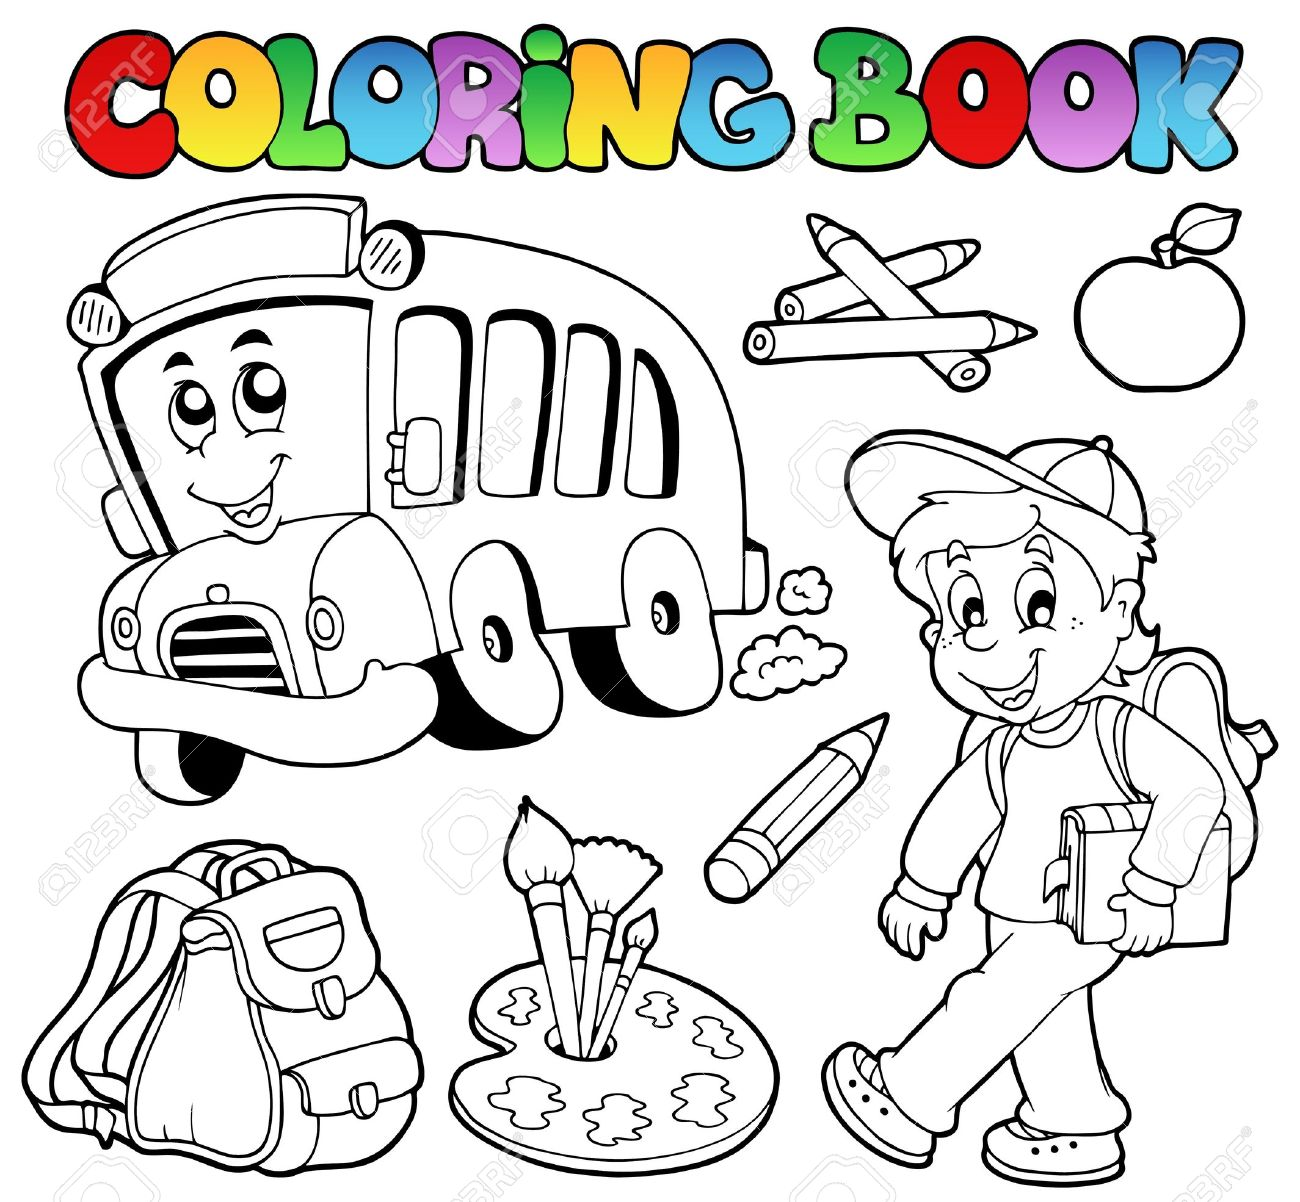 Coloring book school - Coloring Book School Cartoons Stock Vector 10354156